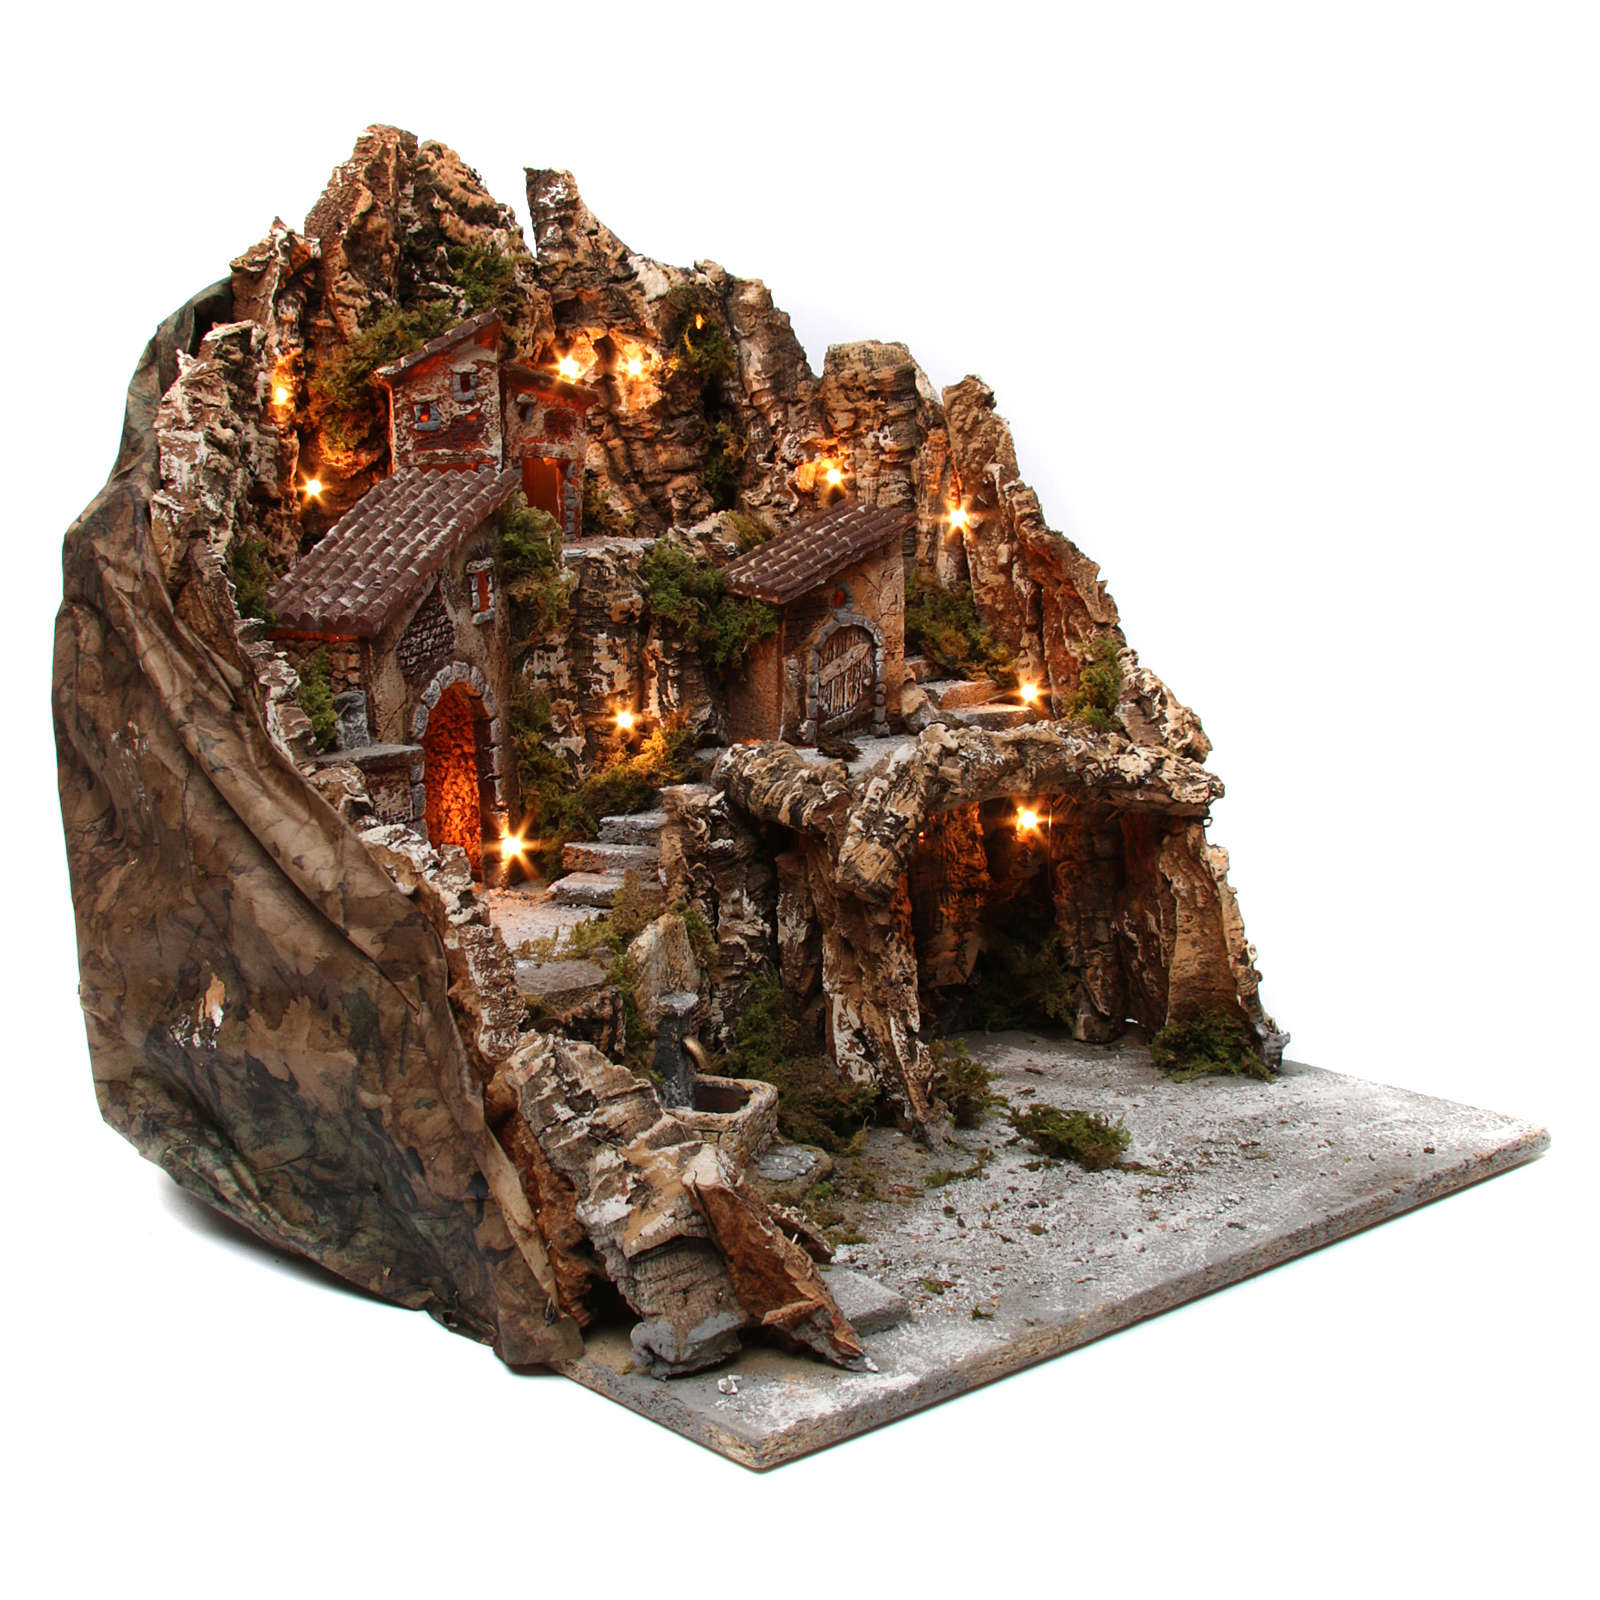 Village for nativity scene with lights, oven, fountain and cave 50x55x60 cm, Neapolitan style 4